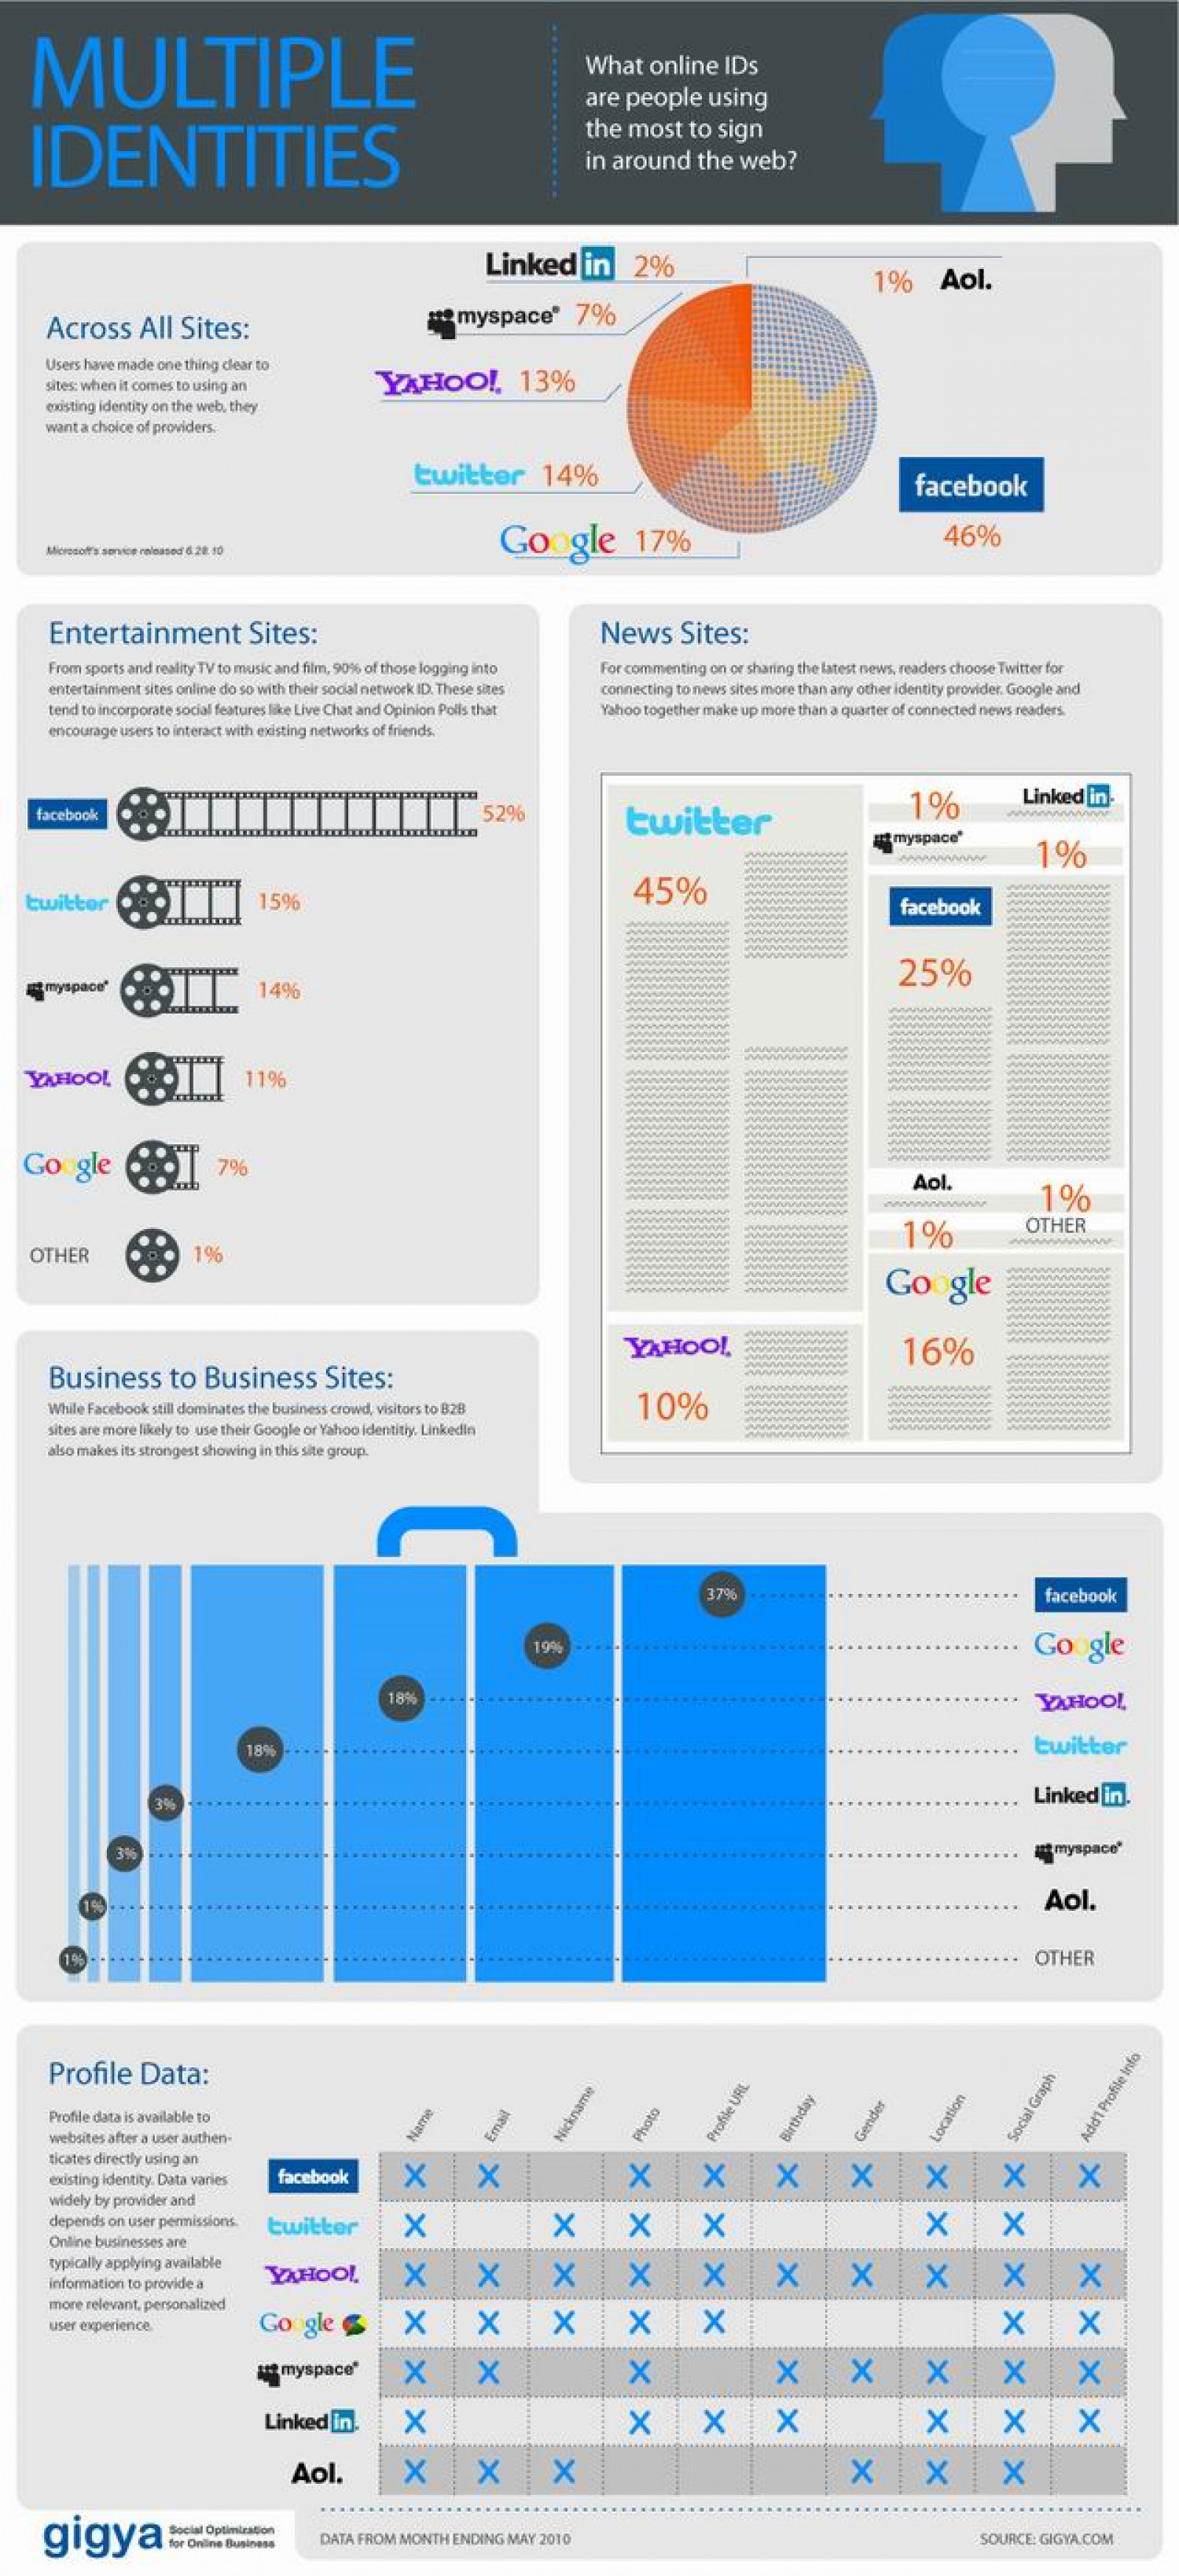 What Identities Are We Using to Sign in Around the Web? Infographic